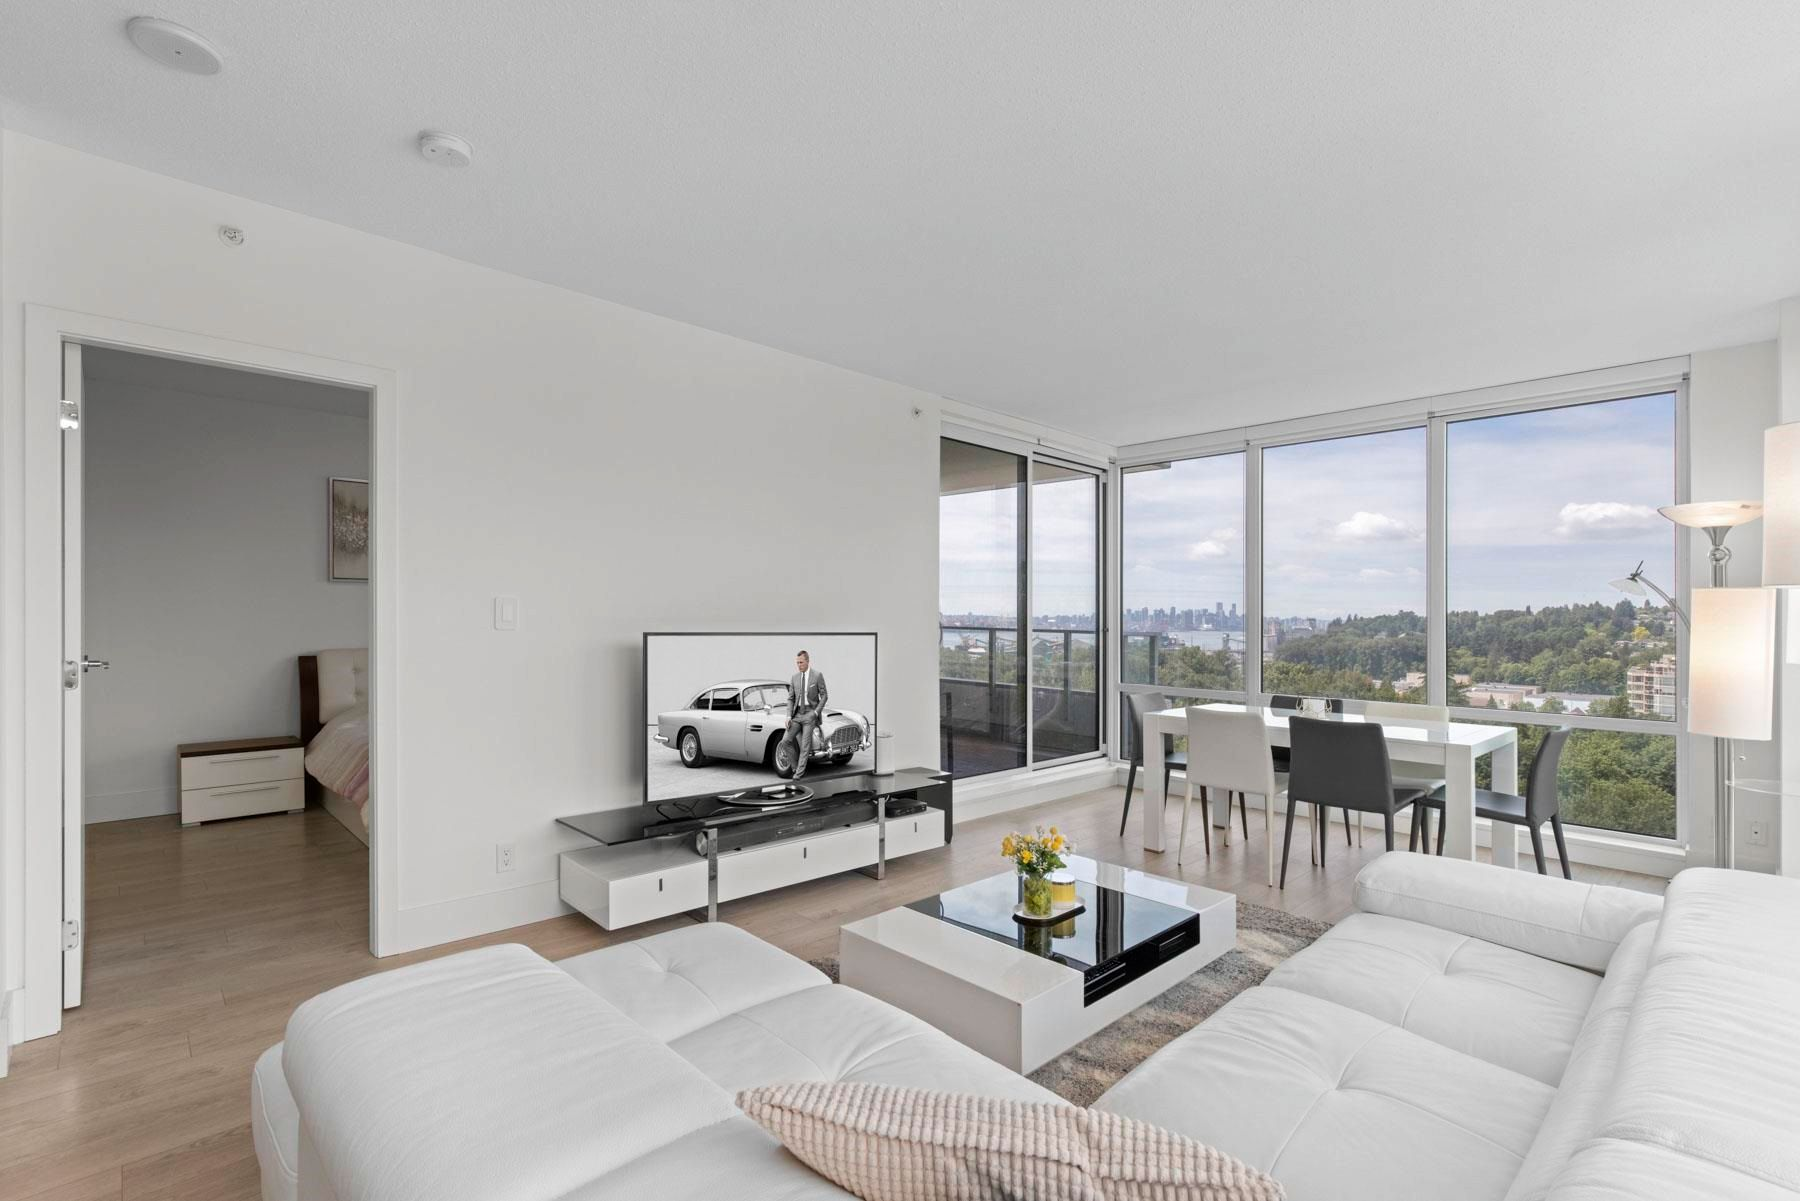 """Main Photo: 1907 680 SEYLYNN Crescent in North Vancouver: Lynnmour Condo for sale in """"Compass at Seylynn Village"""" : MLS®# R2595241"""